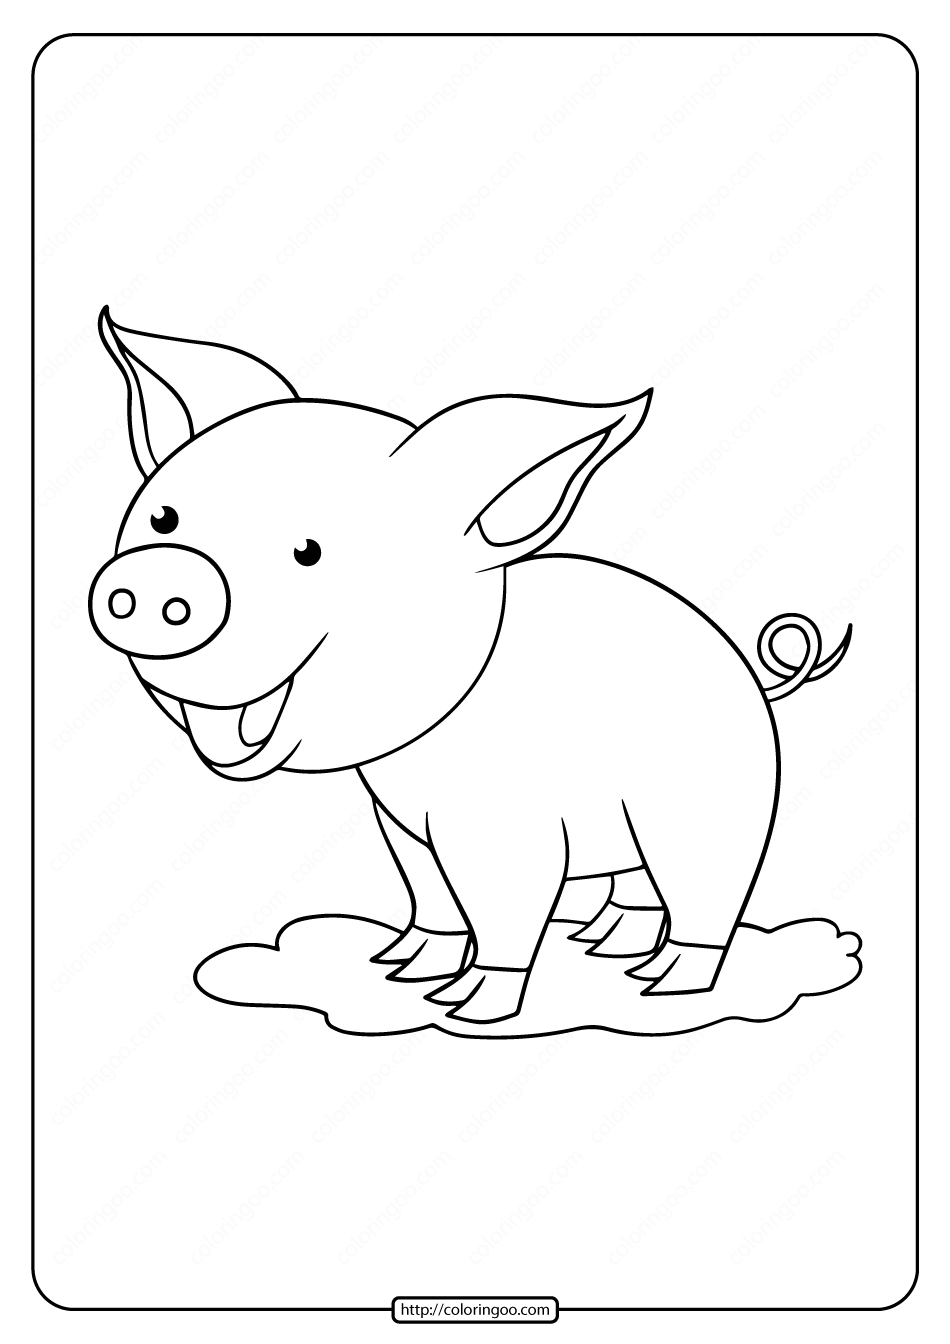 coloring page pig free printable pig coloring pages for kids cool2bkids pig page coloring